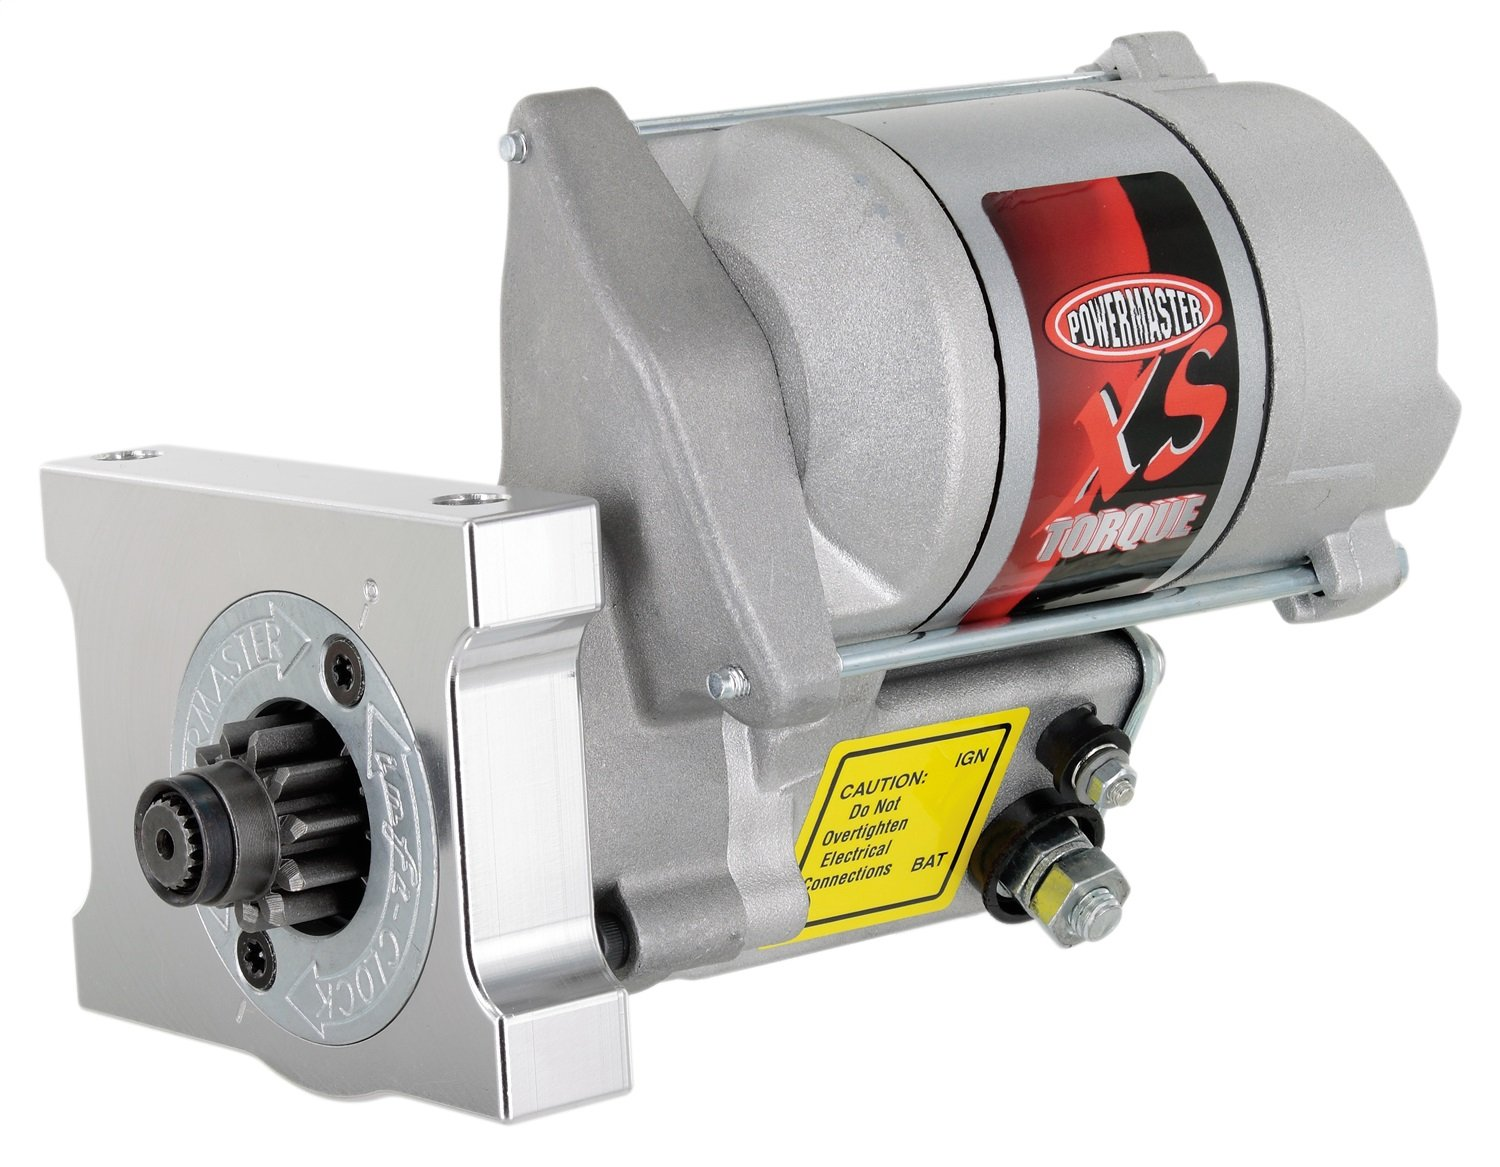 Starter Motor Problems >> Amazon Com Powermaster 9500 Starter Motor 1 4 Kilo Watts